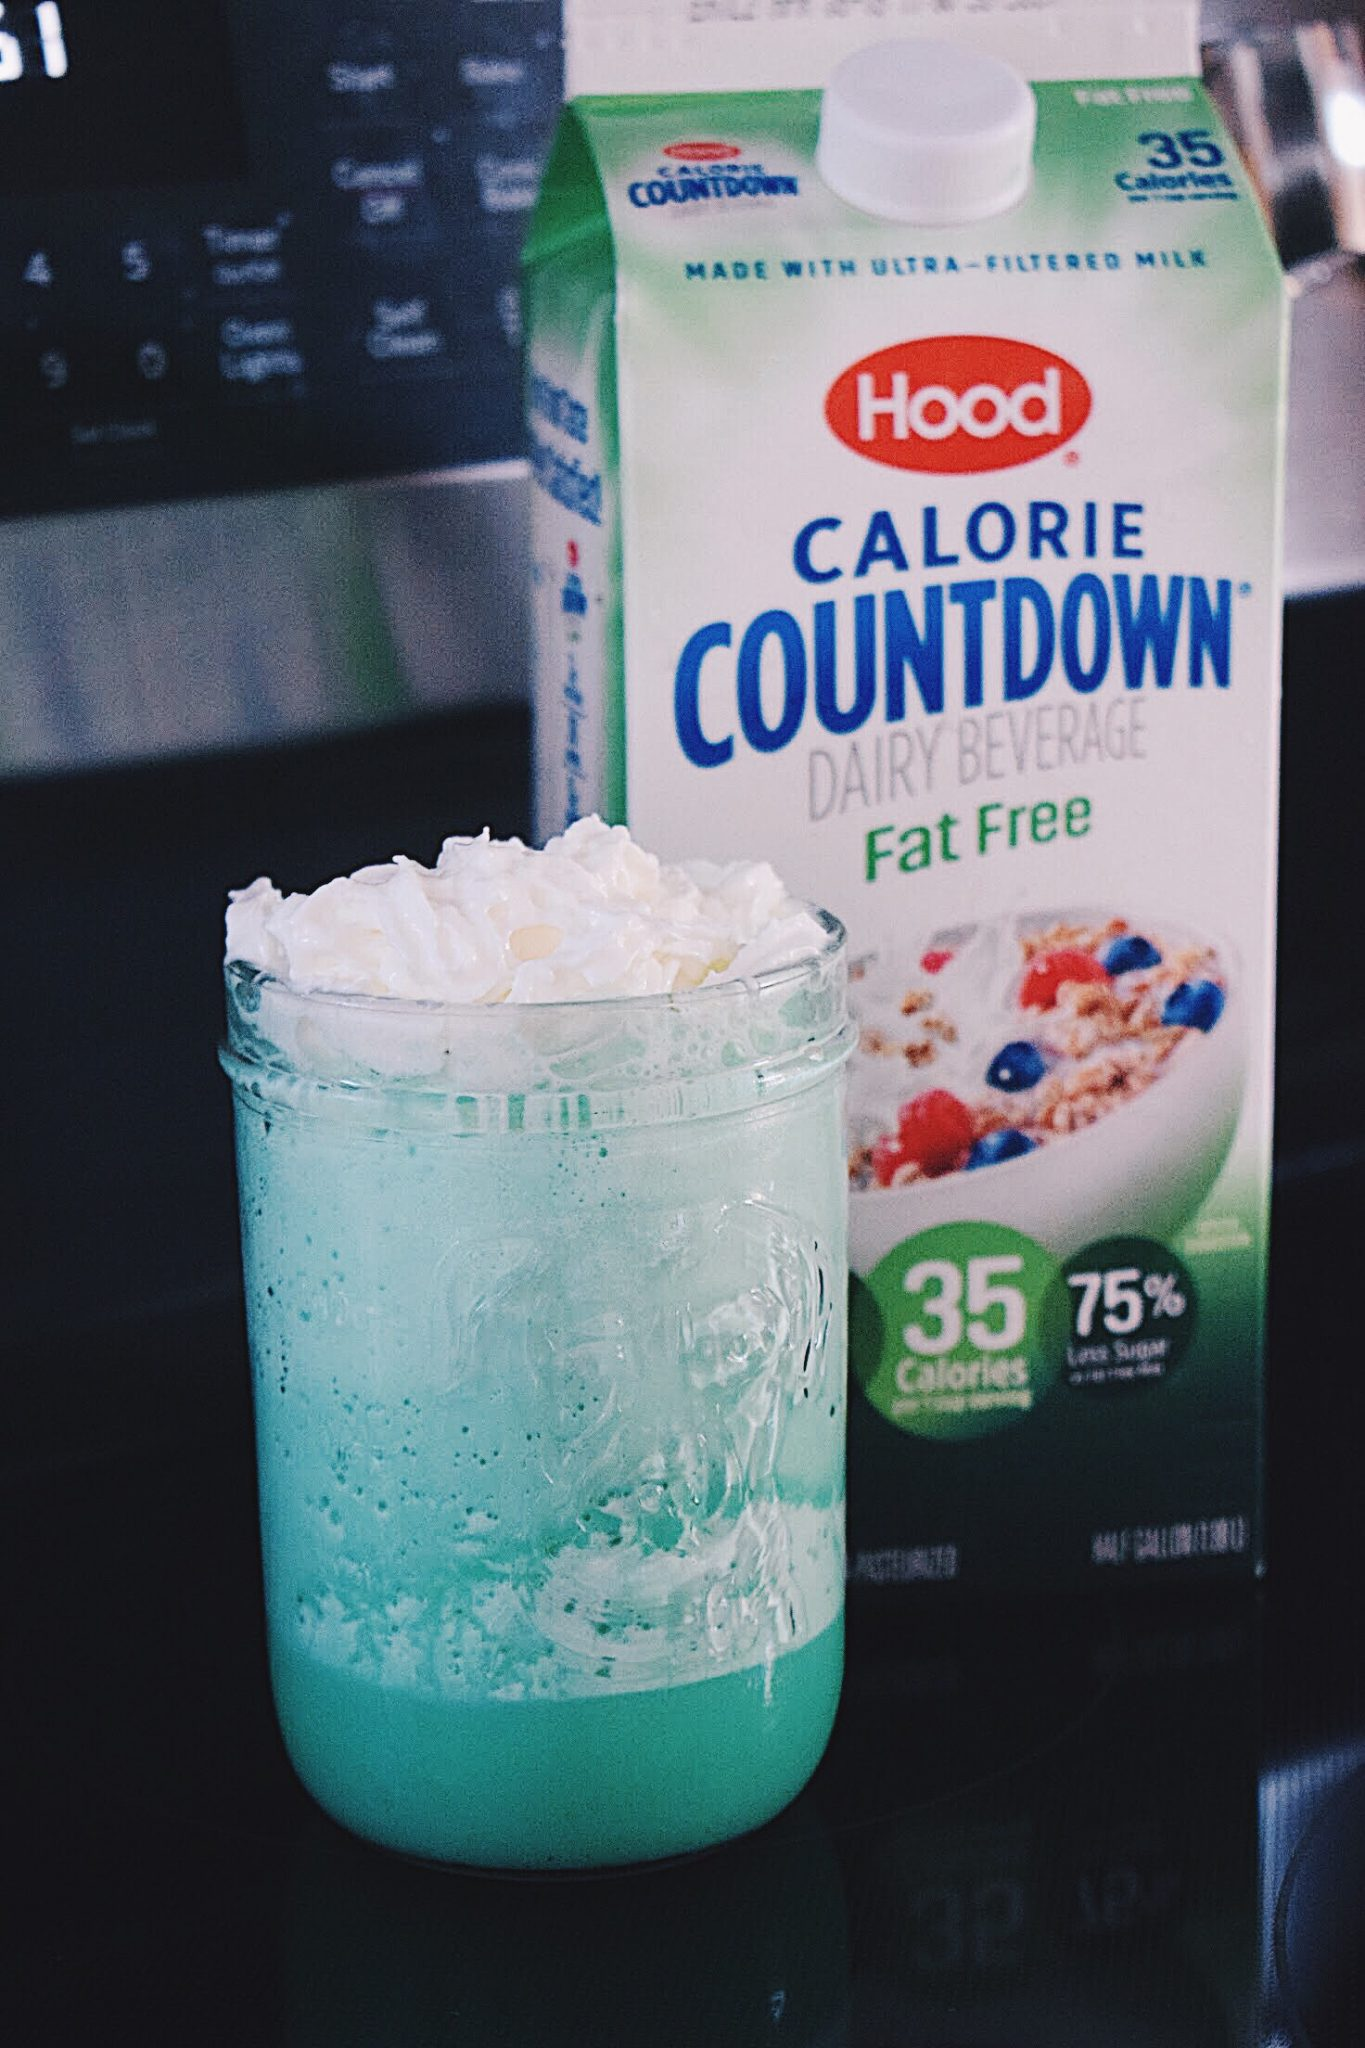 Mint Shamrock Shake With Hood Calorie Countdown